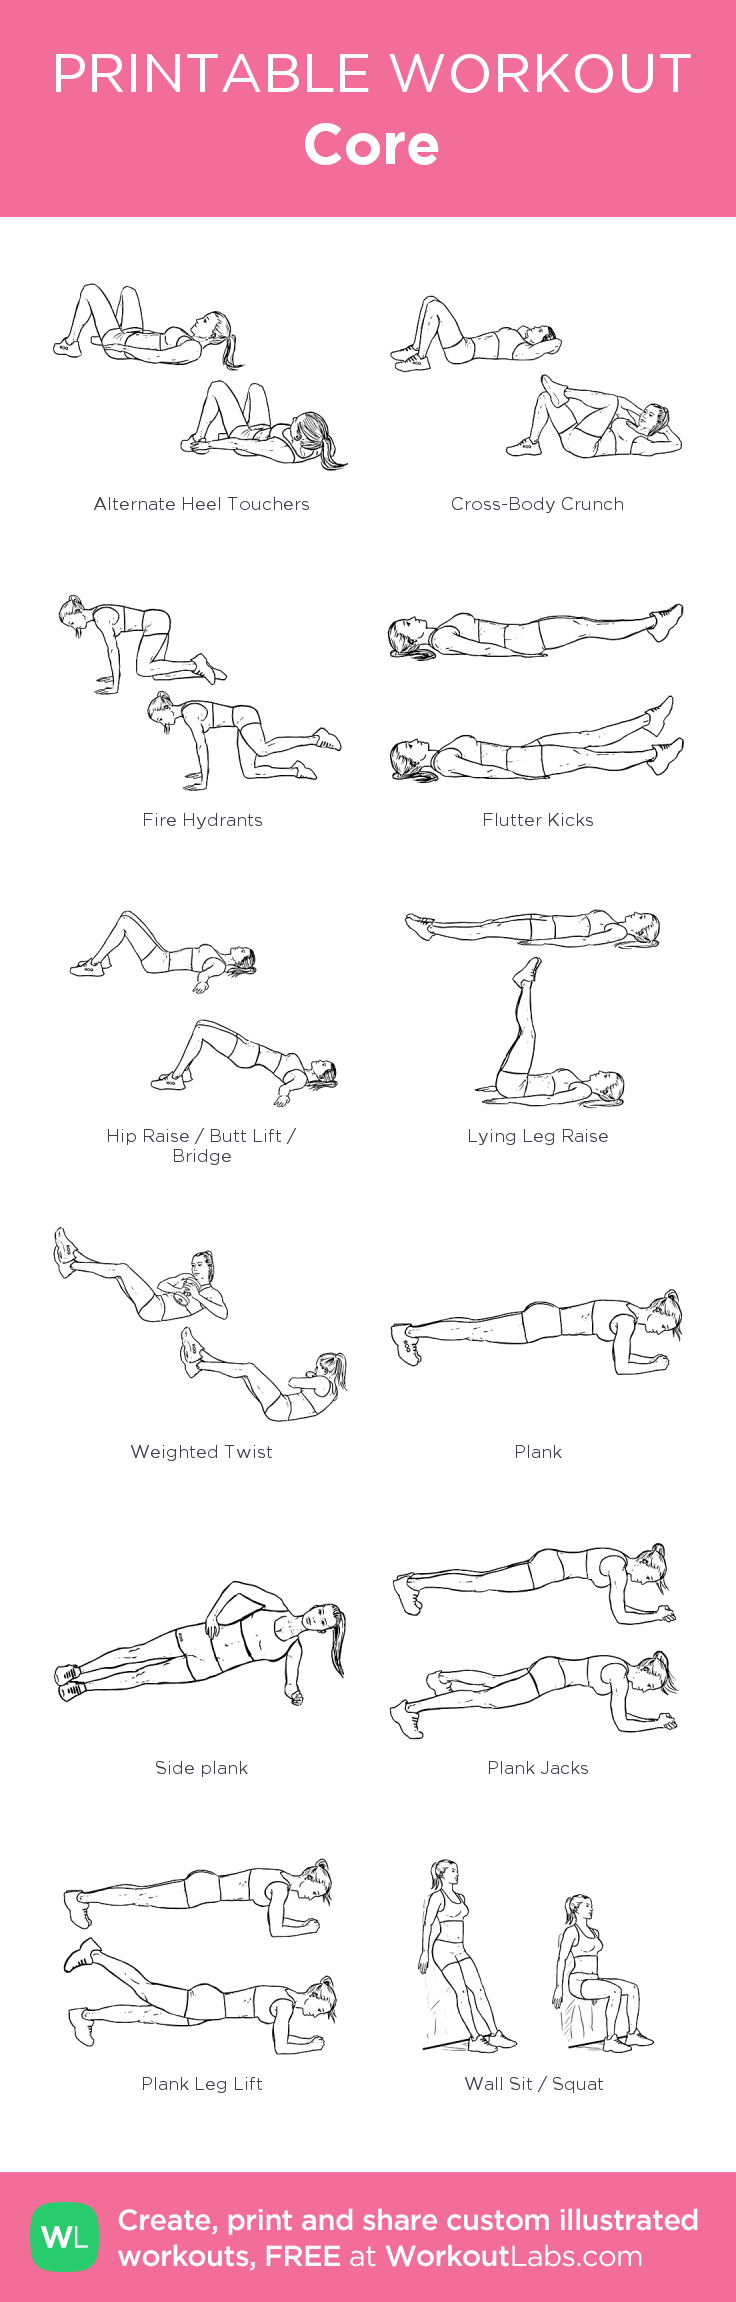 Core: my custom printable workout by @WorkoutLabs #workoutlabs